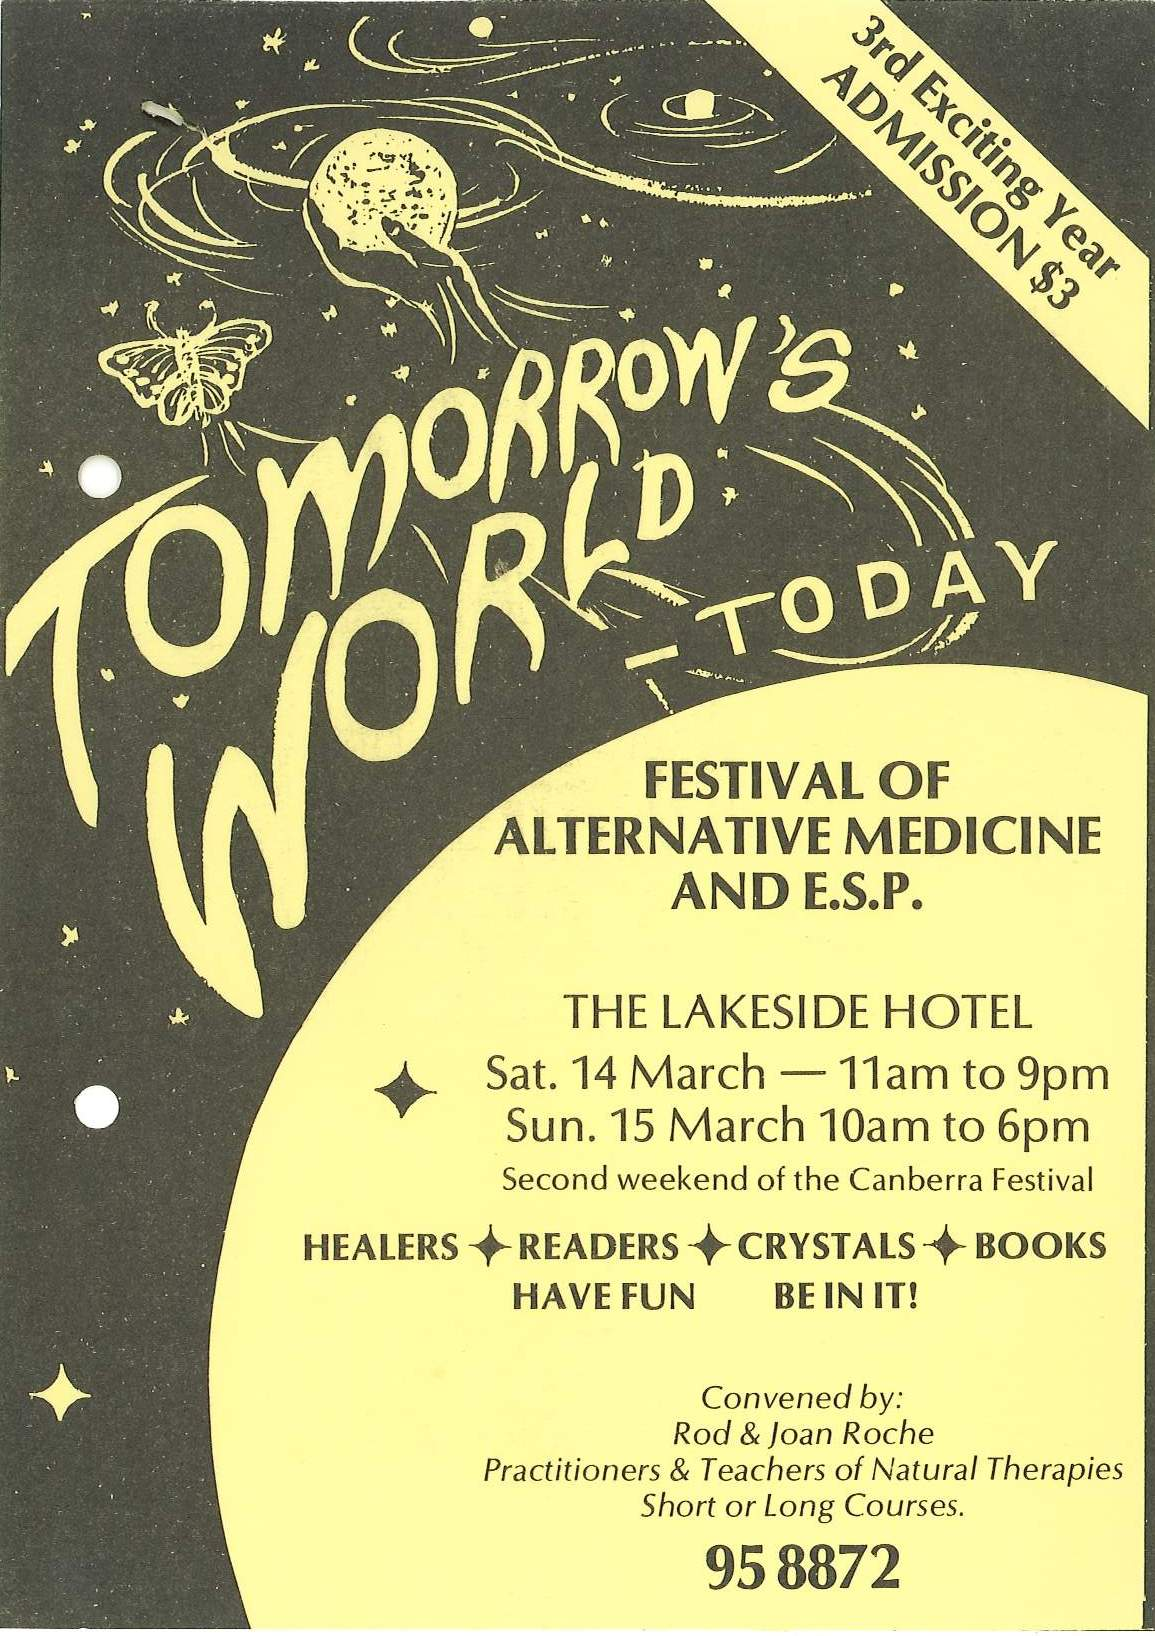 Pamphlet advertising the Tomorrow's World Festival